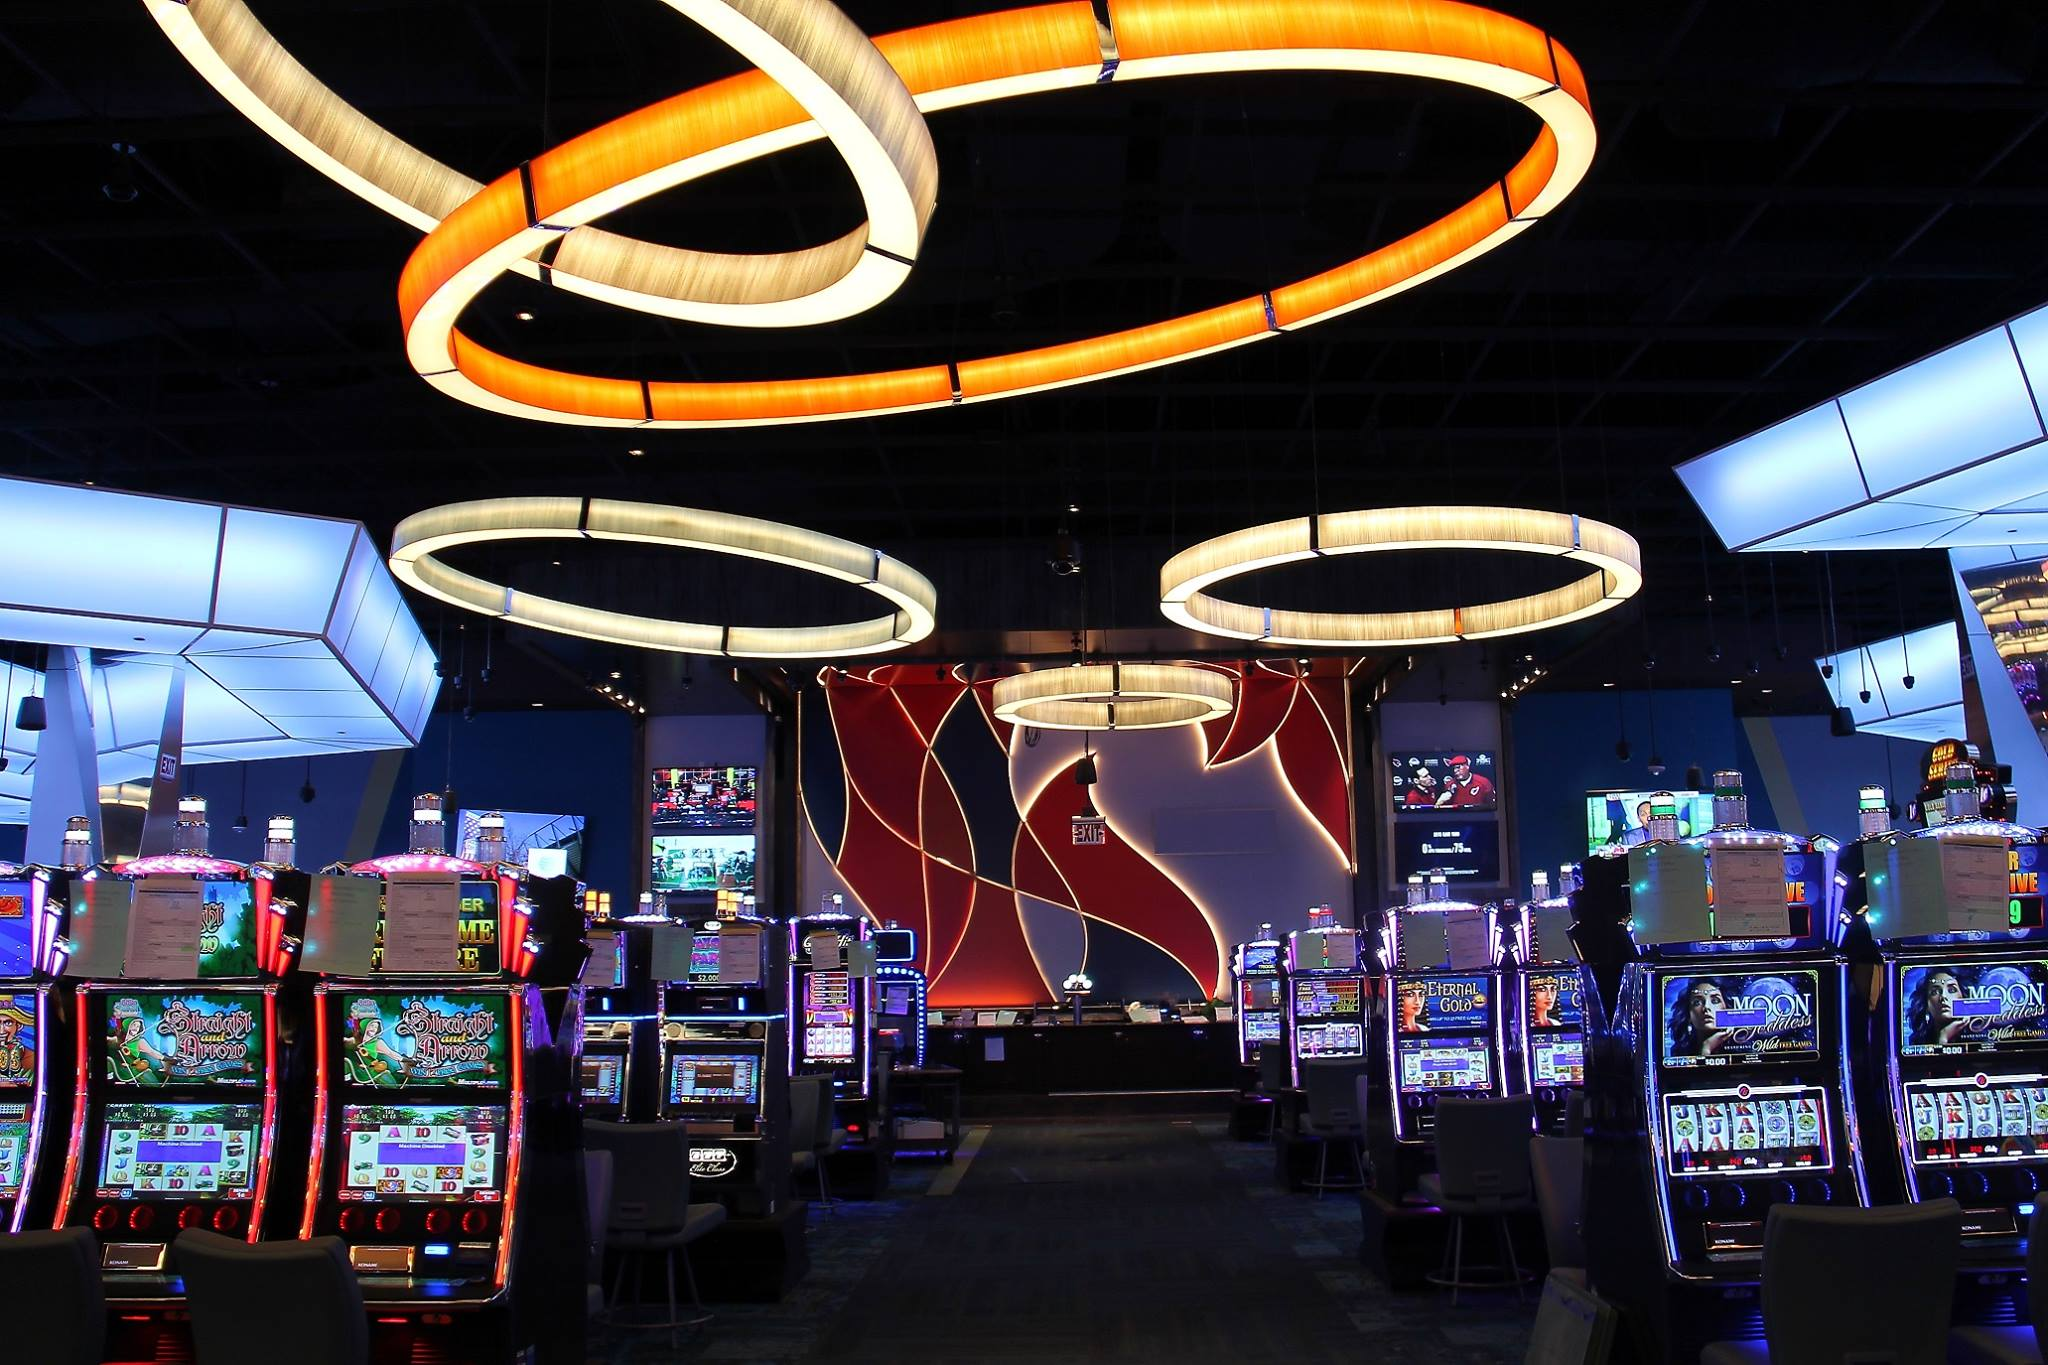 Tohono O'odham Nation set to open new casino on December 20